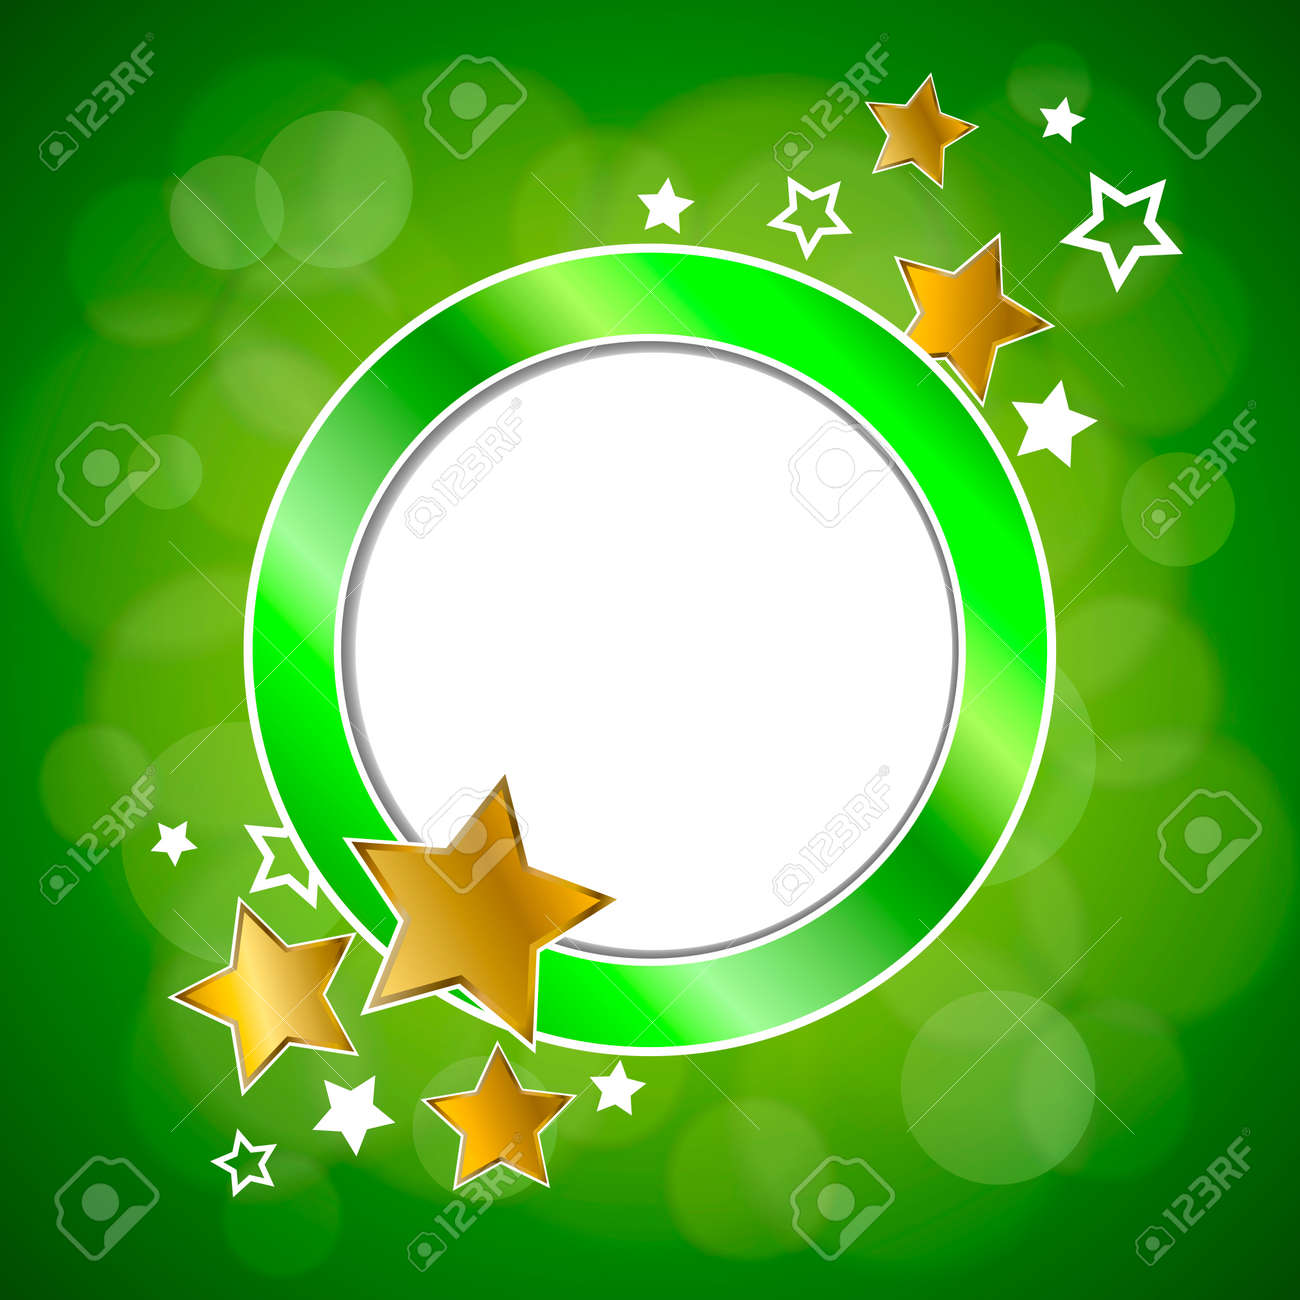 Abstract Background Green Gold Stars Circle Frame Illustration